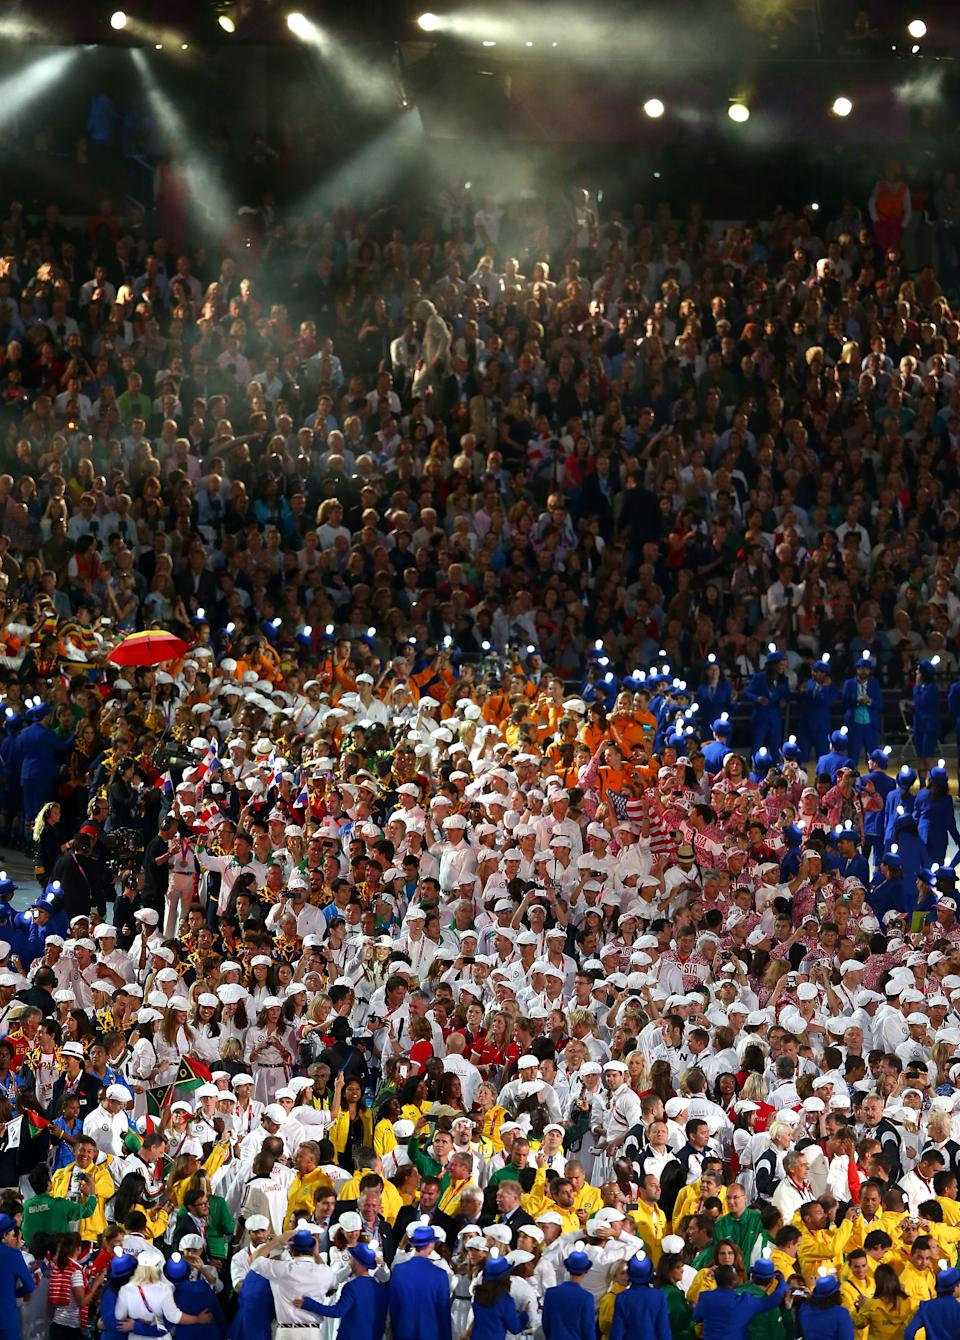 Athletes enter the stadium during the Closing Ceremony on Day 16 of the London 2012 Olympic Games at Olympic Stadium on August 12, 2012 in London, England. (Photo by Michael Steele/Getty Images)